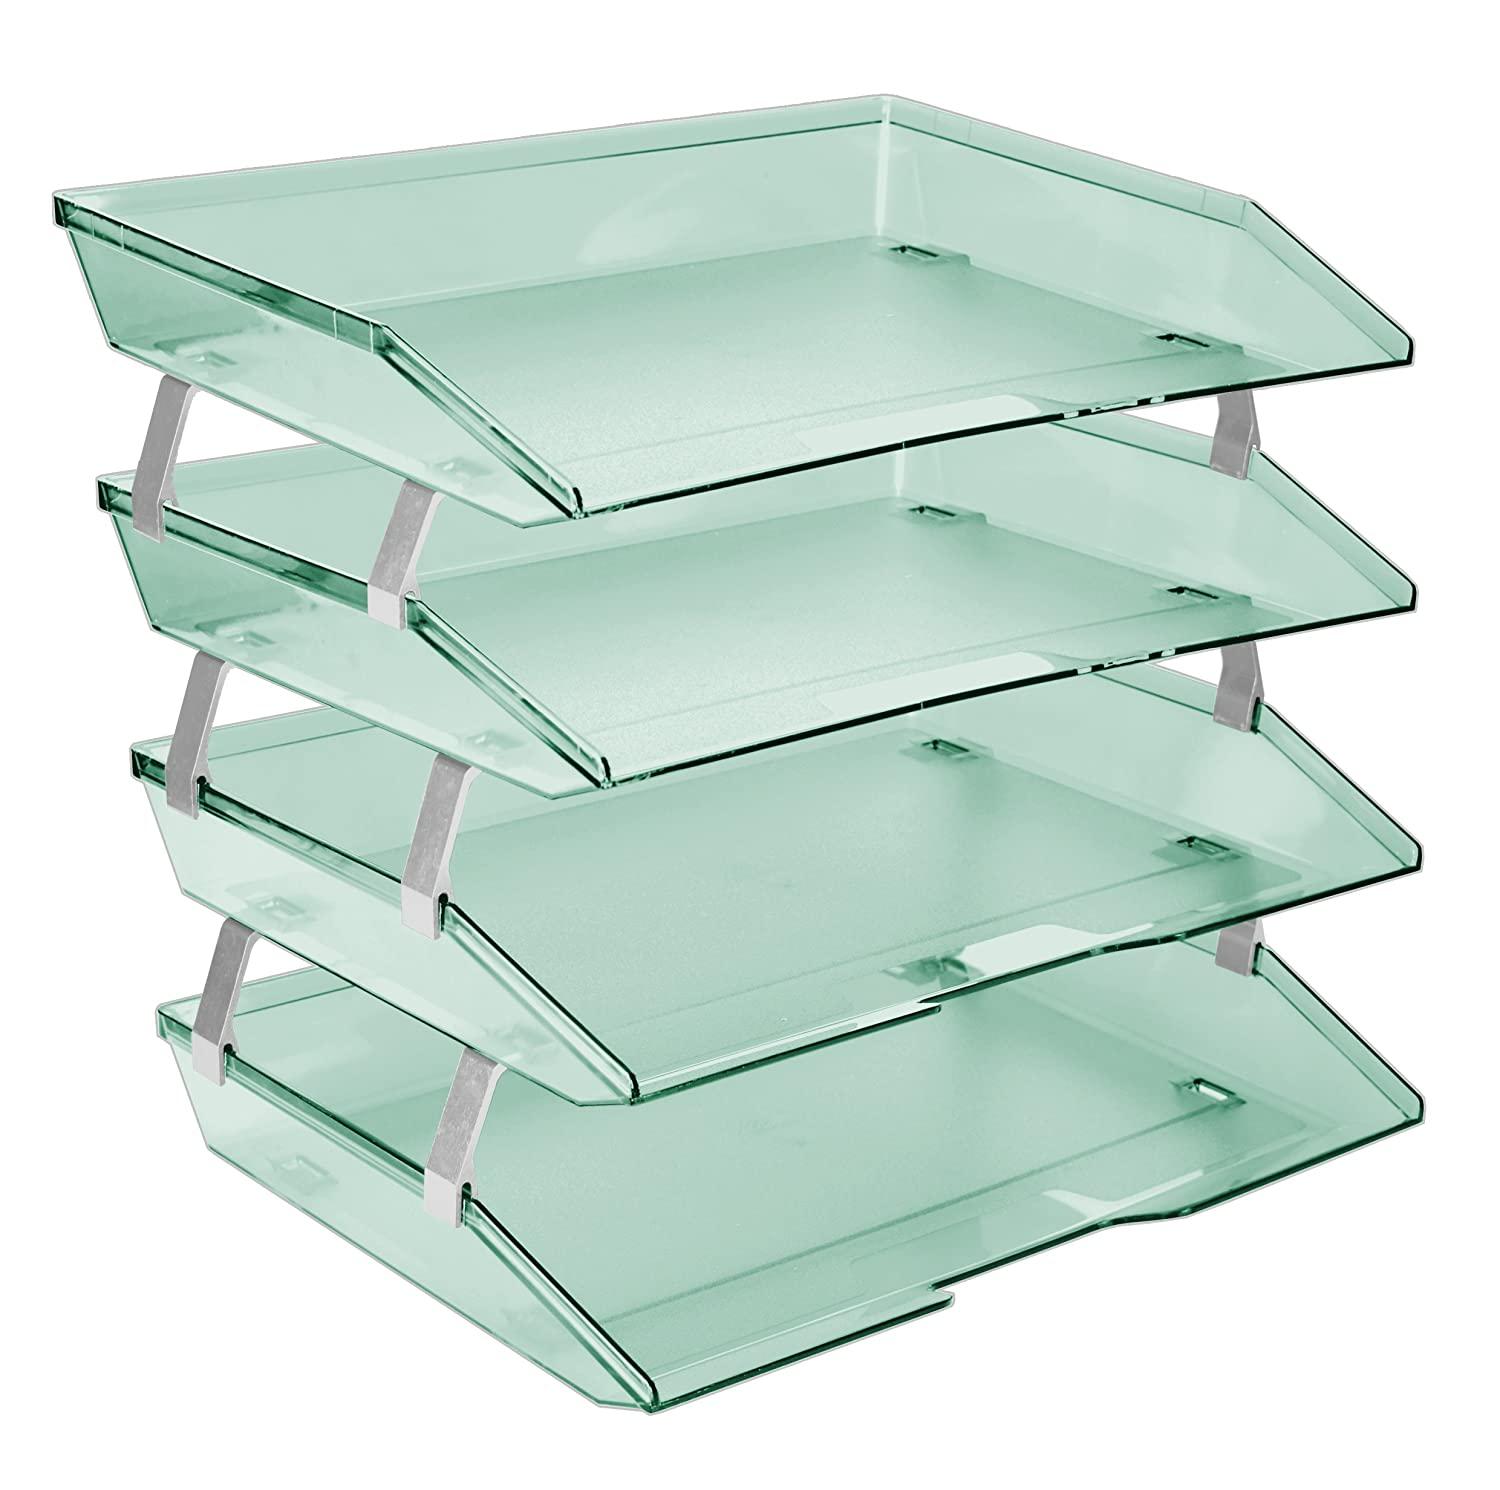 Acrimet Facility 4 Tier Letter Tray Side Load Plastic Desktop File Organizer (Clear Green Color)